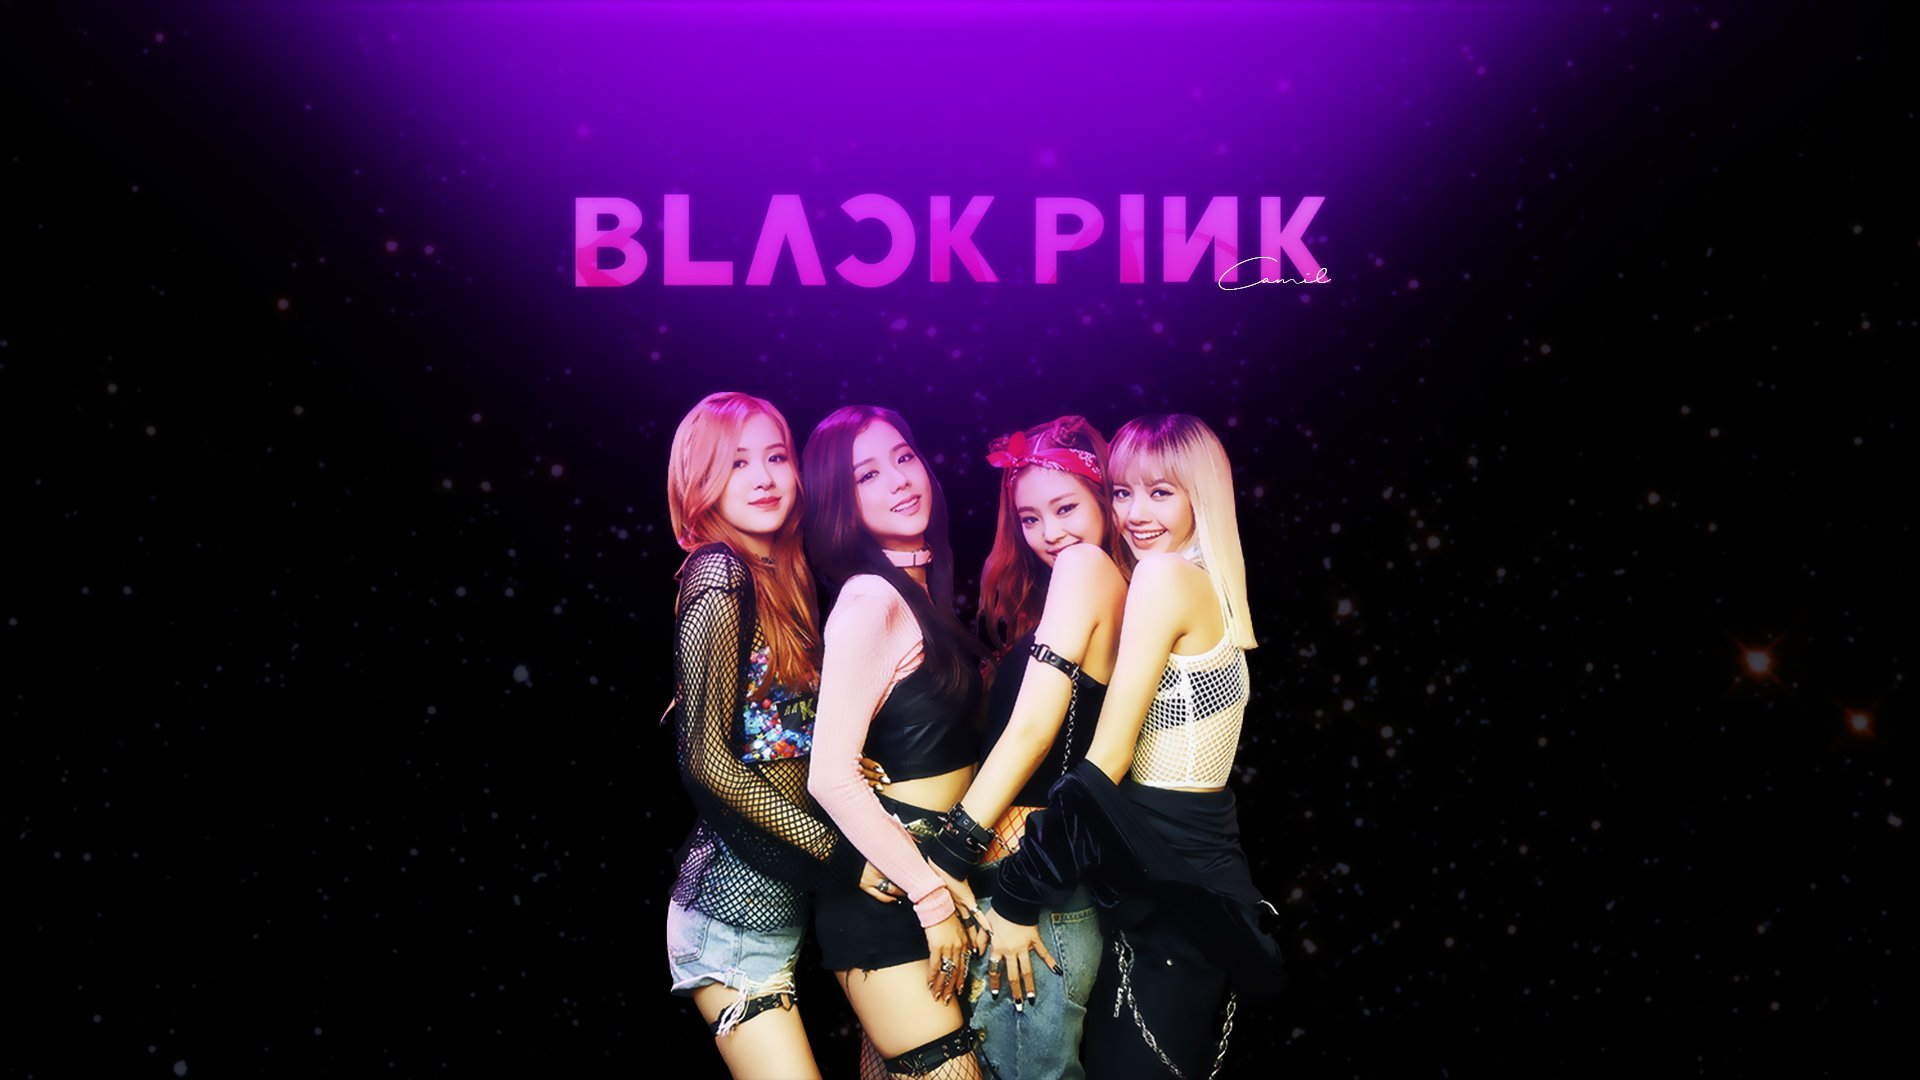 14 Blackpink Hd Wallpapers Background Images Wallpaper Abyss